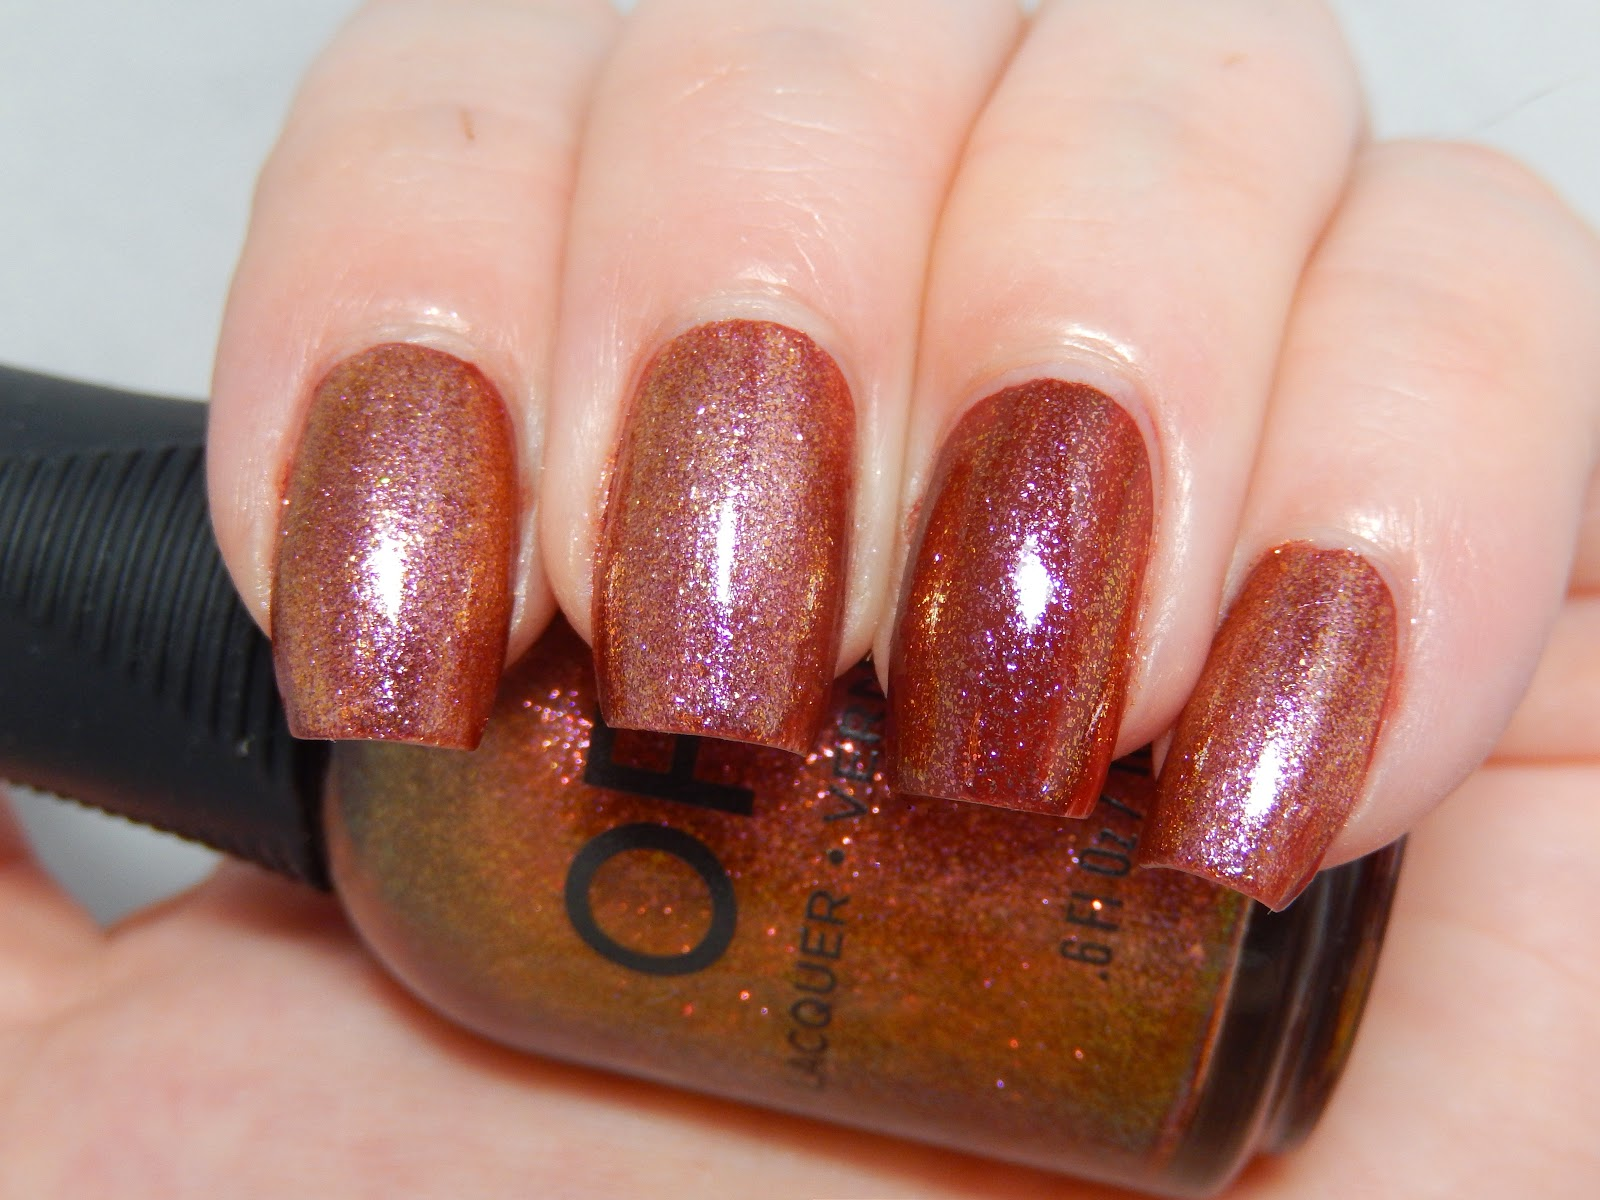 Color Club Lion's Den vs. Orly Brush It On over China Glaze Brownstone